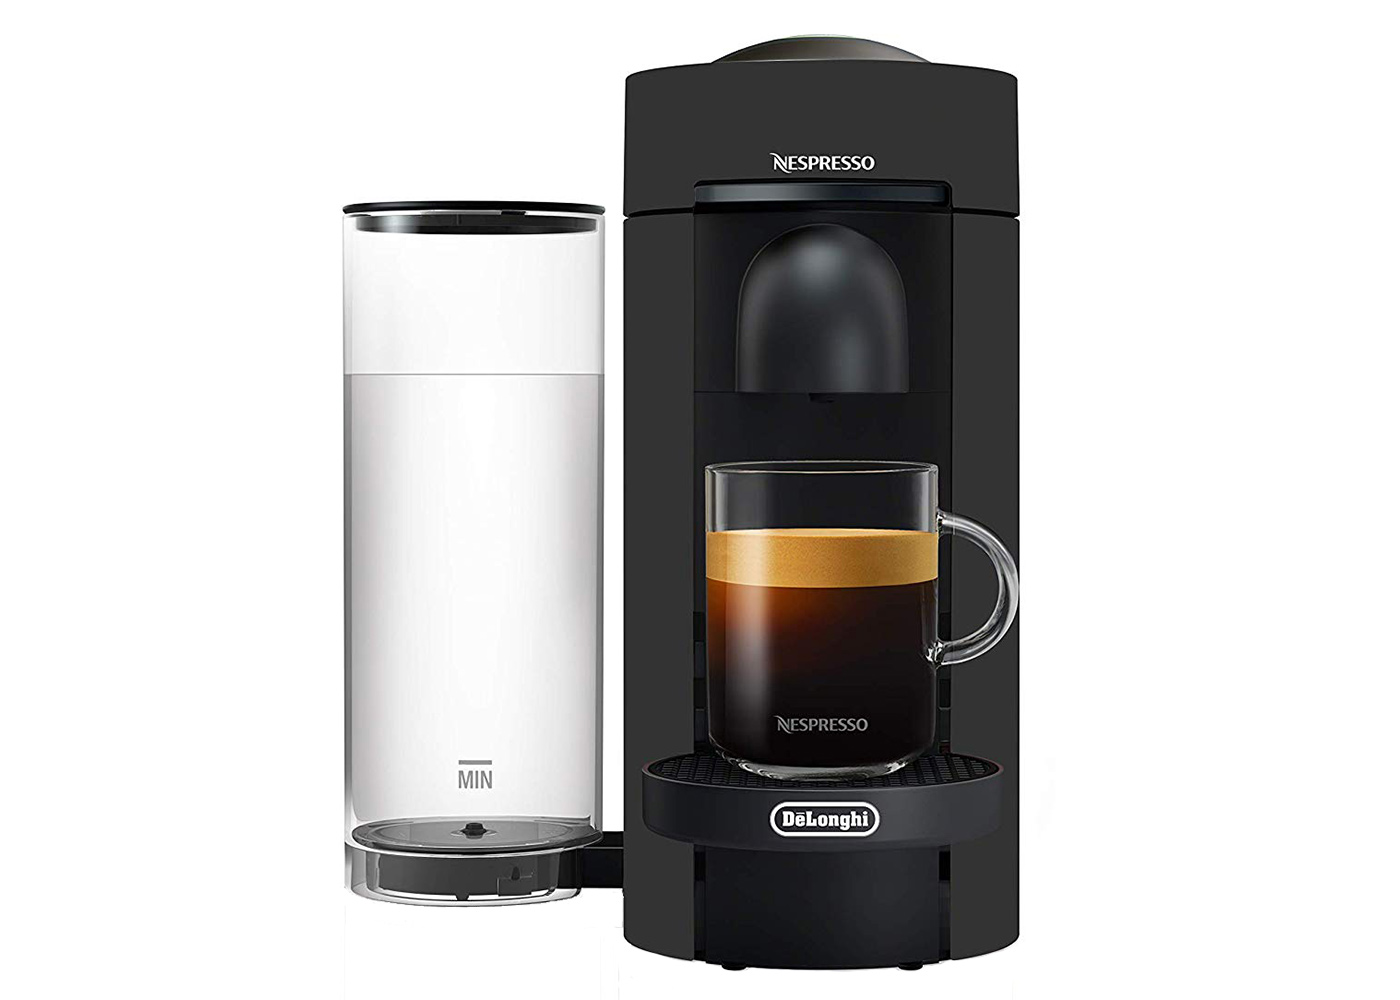 You Can Get a Nespresso Machine for Under $100 This Amazon Prime Day